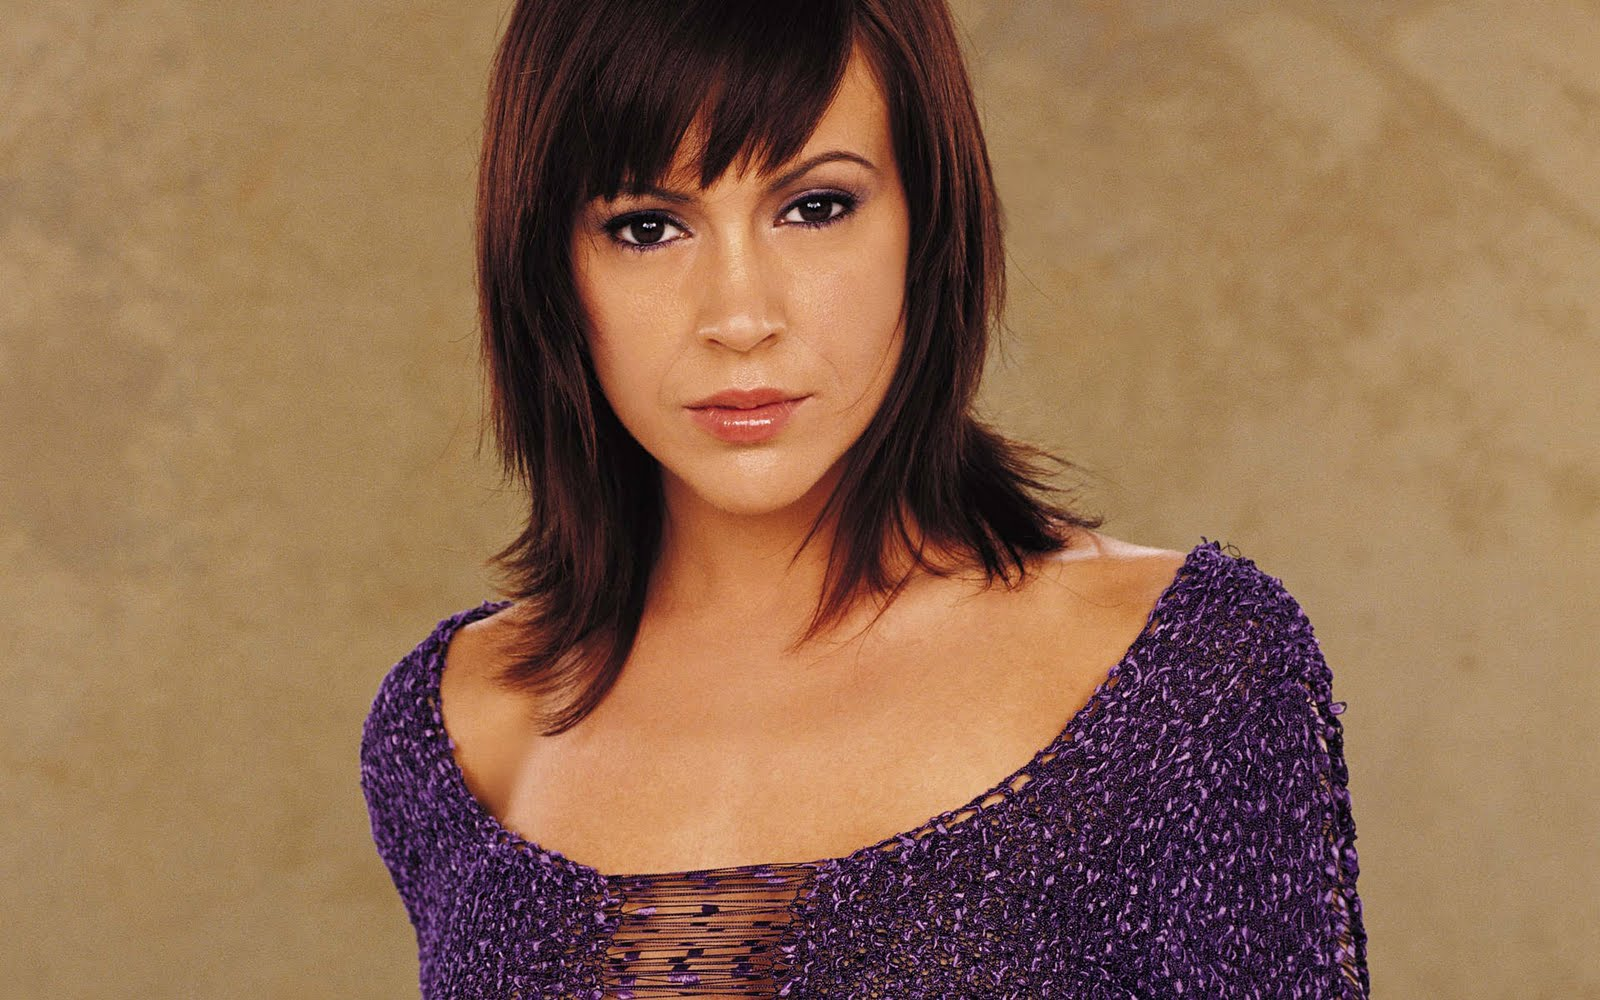 Alyssa Milano wallpaper, alyssa milano red carpet, alyssa milano news, alyssa milano wallpaper widescreen-50